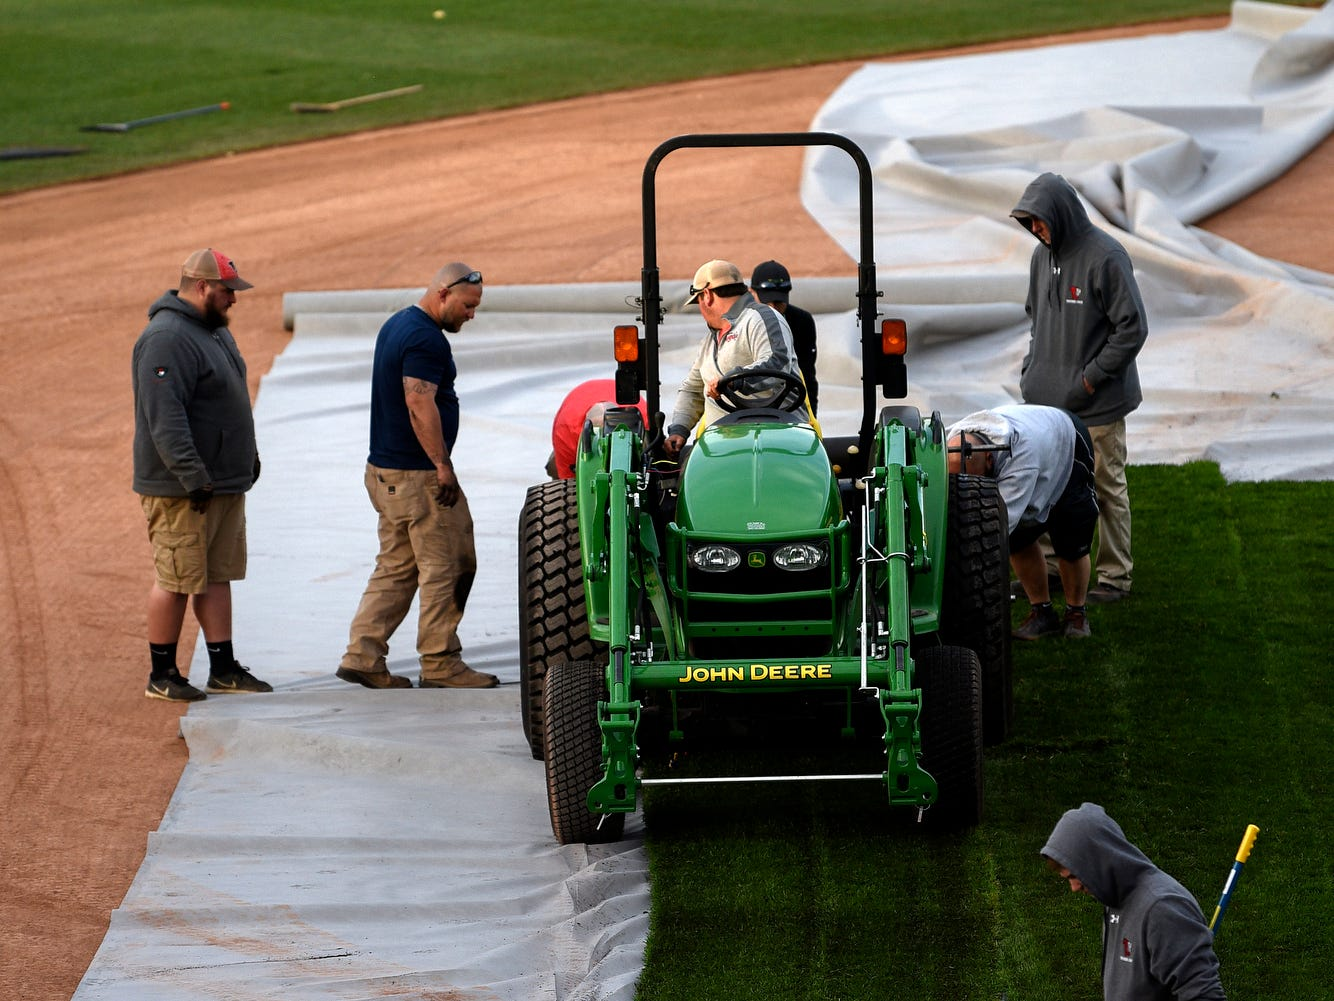 A crew lays sod on the infield dirt as the Lugnuts baseball field is transformed into a soccer pitch on Wednesday, April 24, 2019, before an upcoming Lansing Ignite soccer match at Cooley Law School Stadium in Lansing.